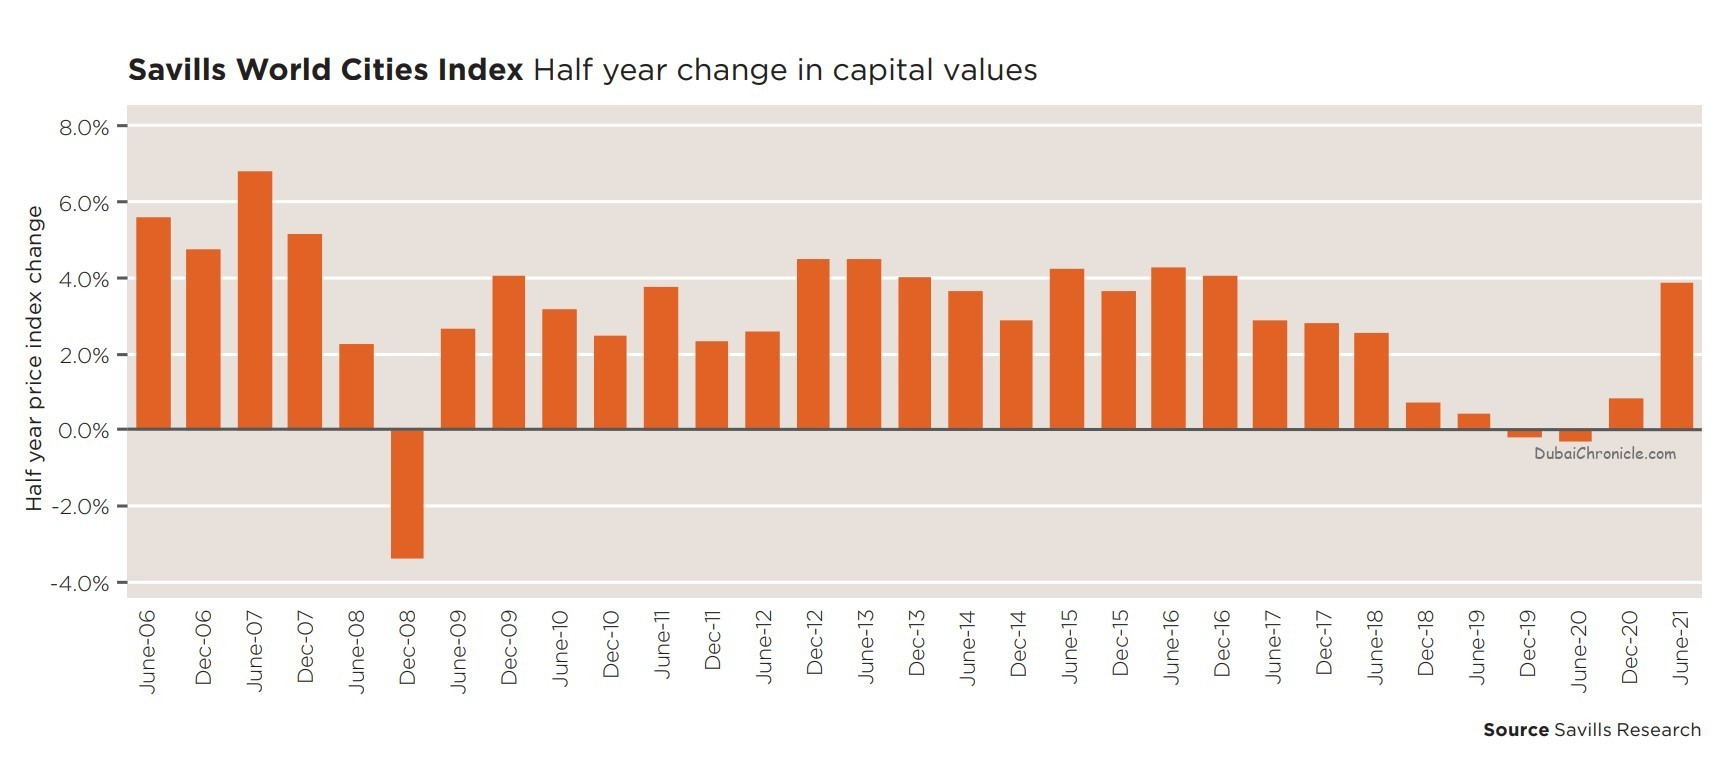 Dubai witnesses a 4.2% increase in capital value growth in the first half of 2021